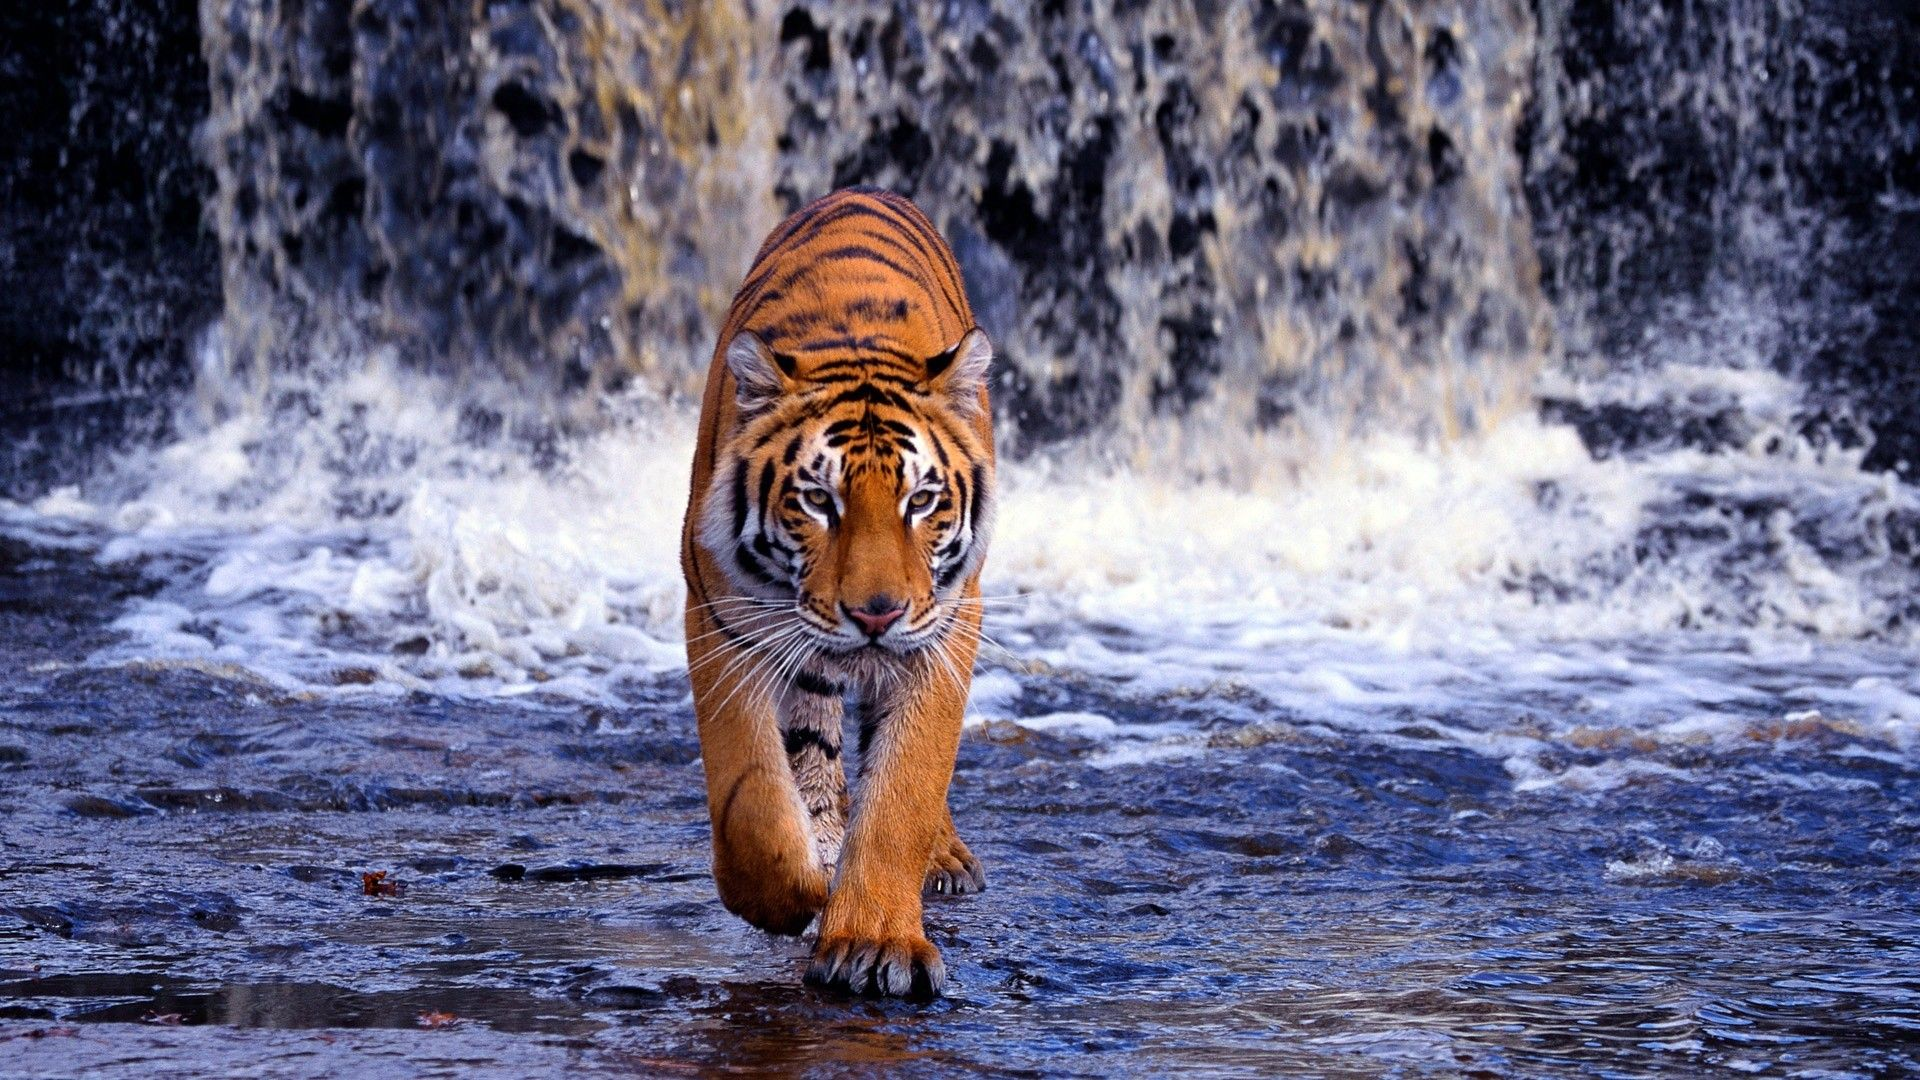 Must see Wallpaper High Quality Tiger - 2457534540b3459e07c470a104ded519  Collection_98135.jpg